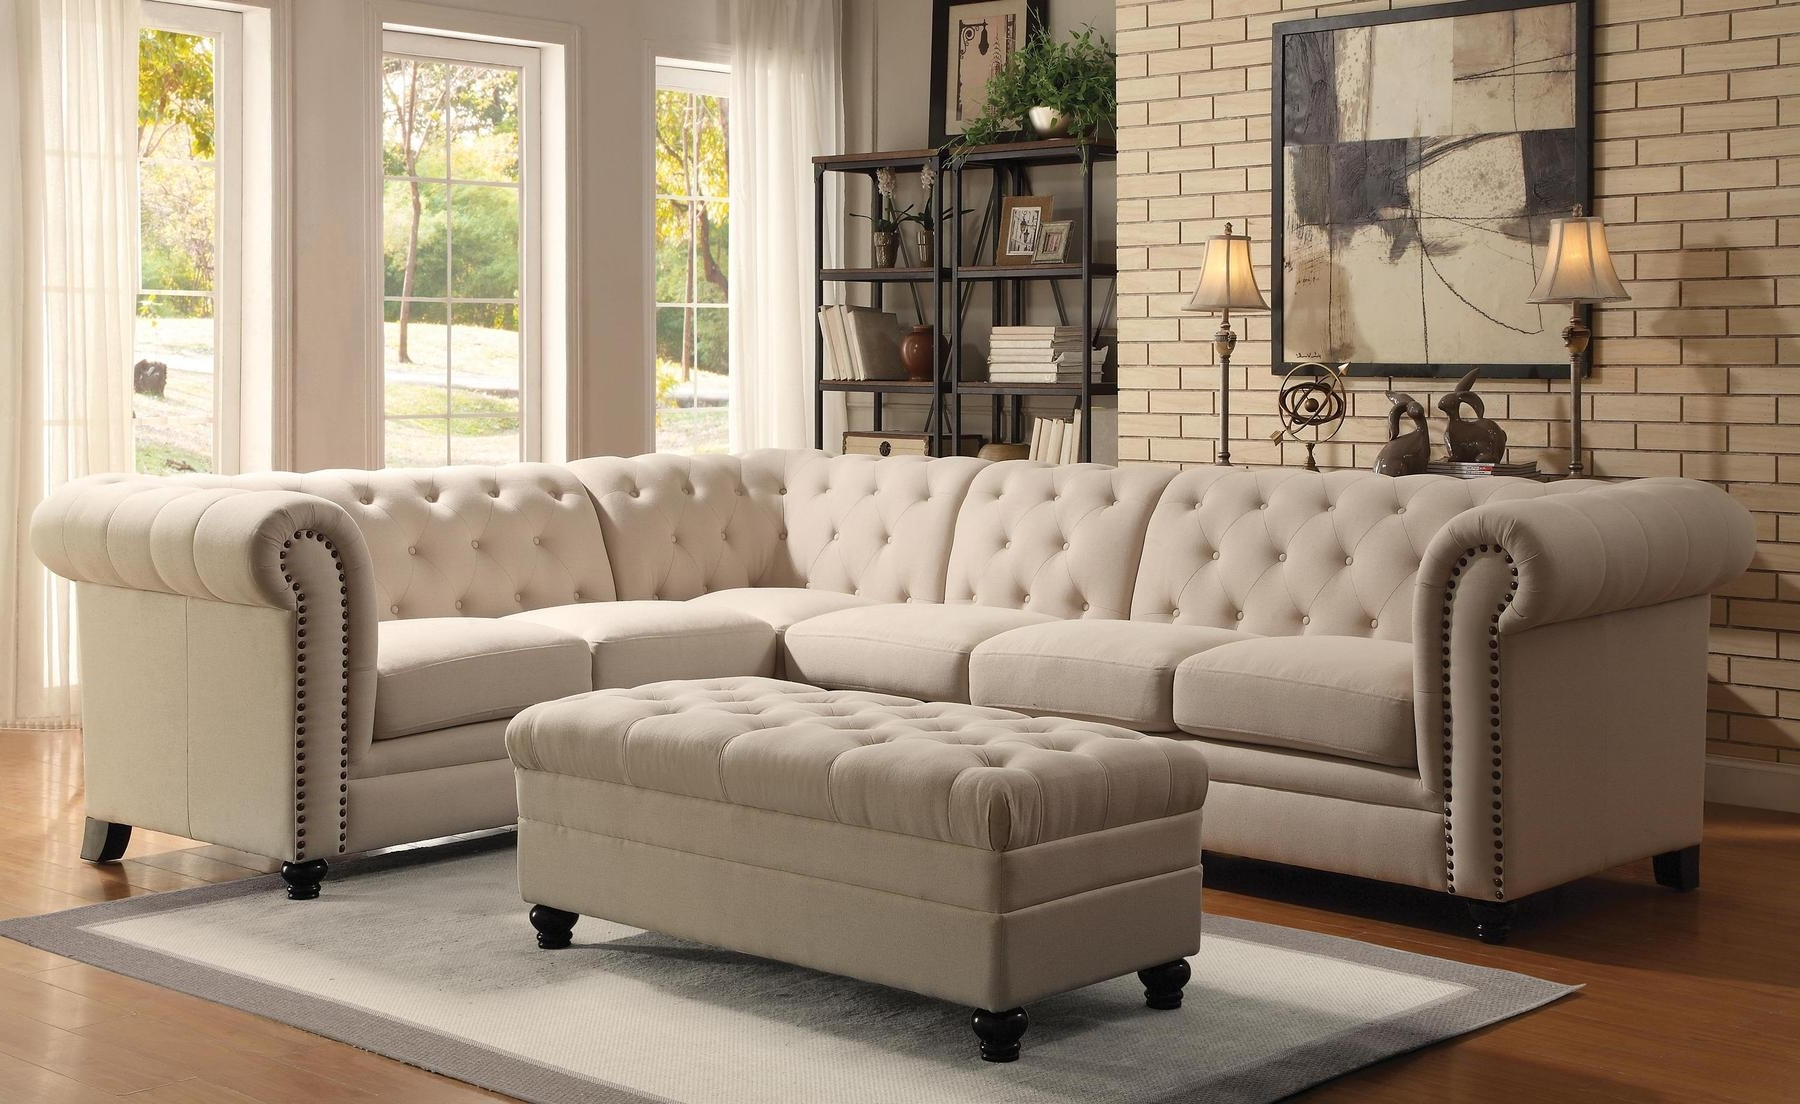 Roy Oatmeal Sectional Sofa 500222 Coaster Furniture Sectional For Most Up To Date Quality Sectional Sofas (View 17 of 20)